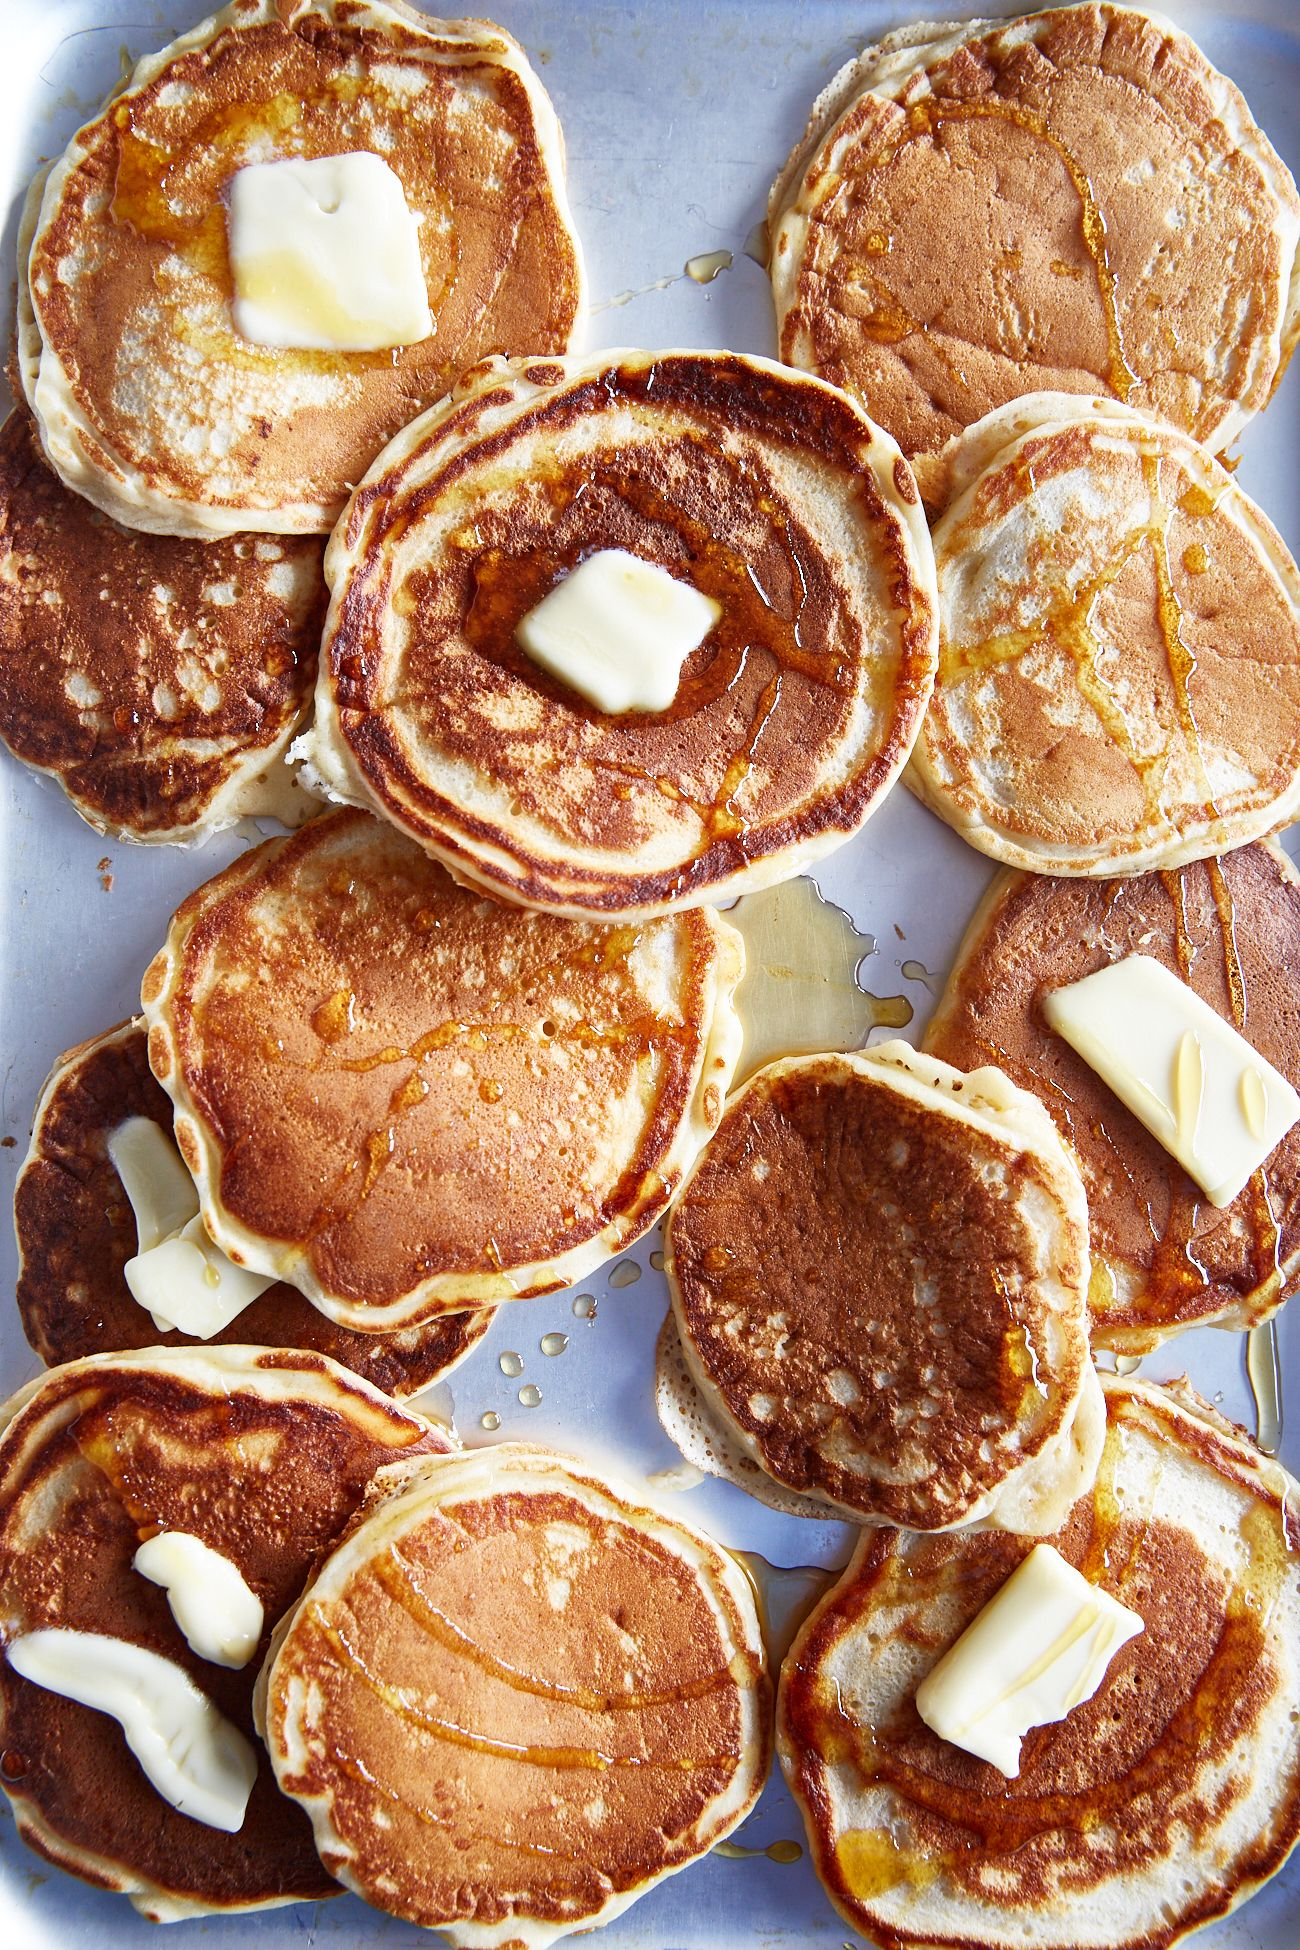 American Buttermilk Pancakes Izy Hossack Top With Cinnamon Recipe In 2020 Buttermilk Pancakes Breakfast Recipes Sweet Egg Recipes For Breakfast